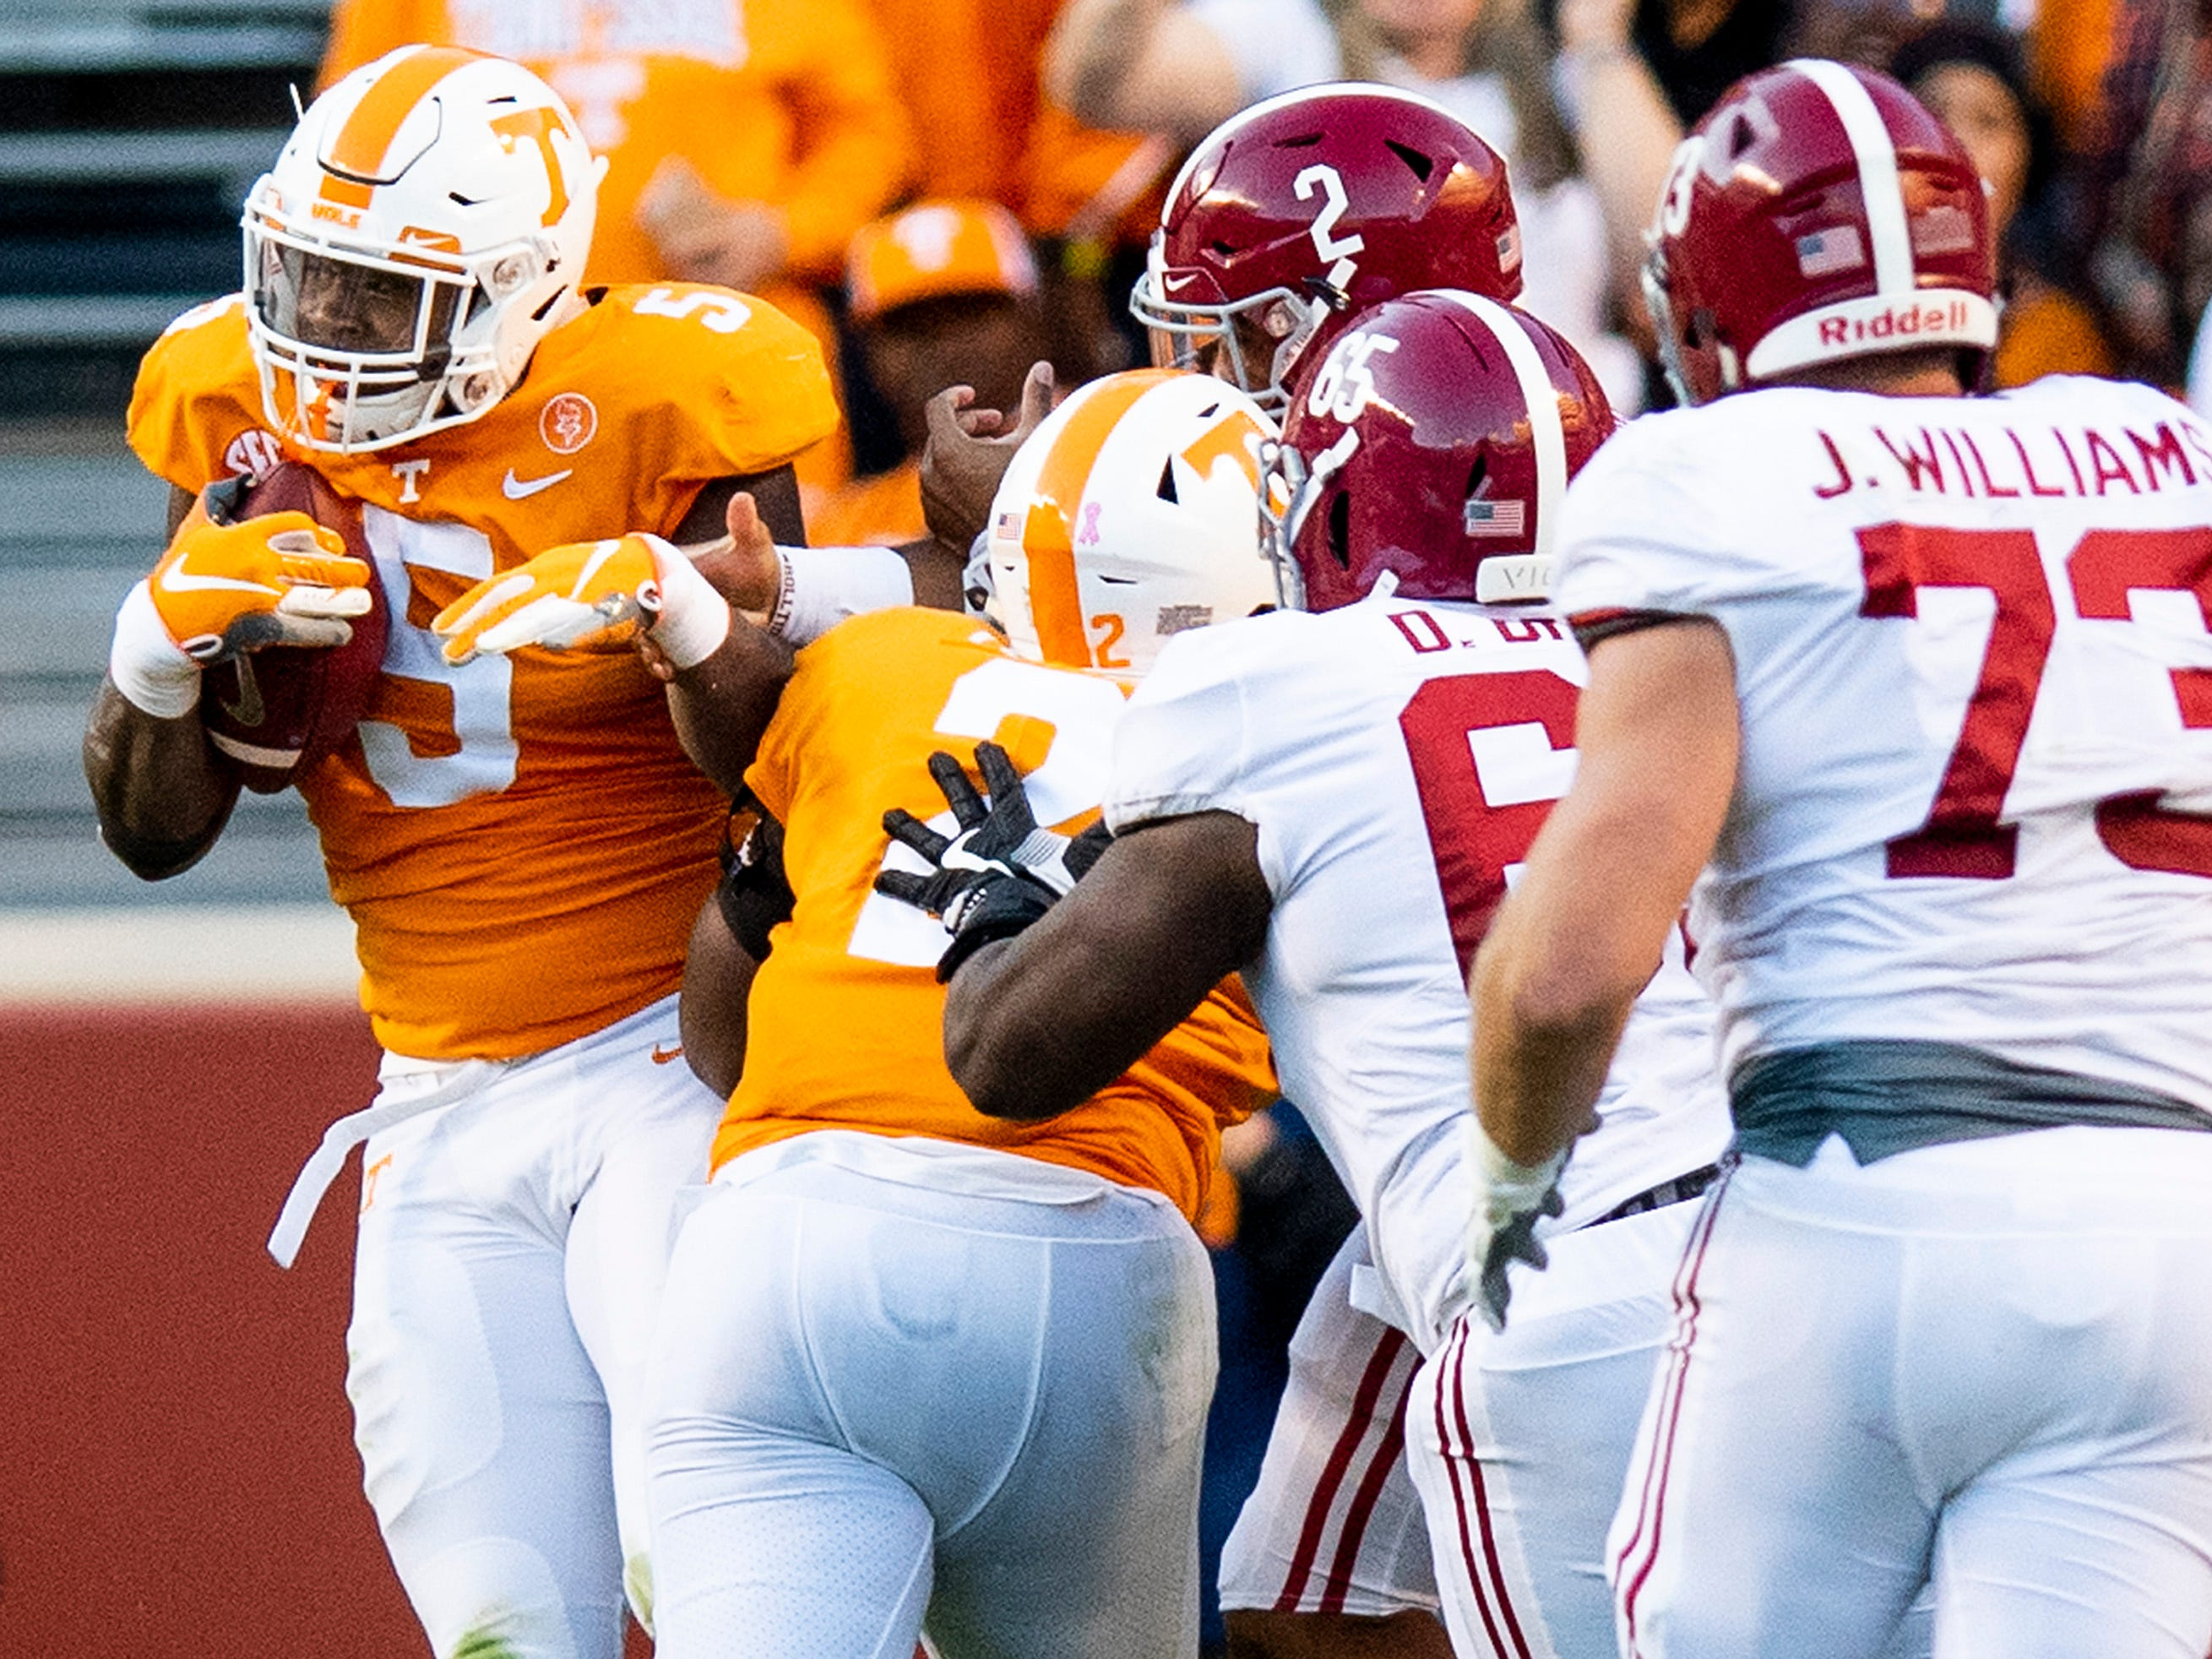 Tennessee defensive lineman Kyle Phillips (5)  inrtercepts a pass by Alabama quarterback Jalen Hurts (2) in second half action at Neyland Stadium in Knoxville, Tn., on Saturday October 20, 2018.